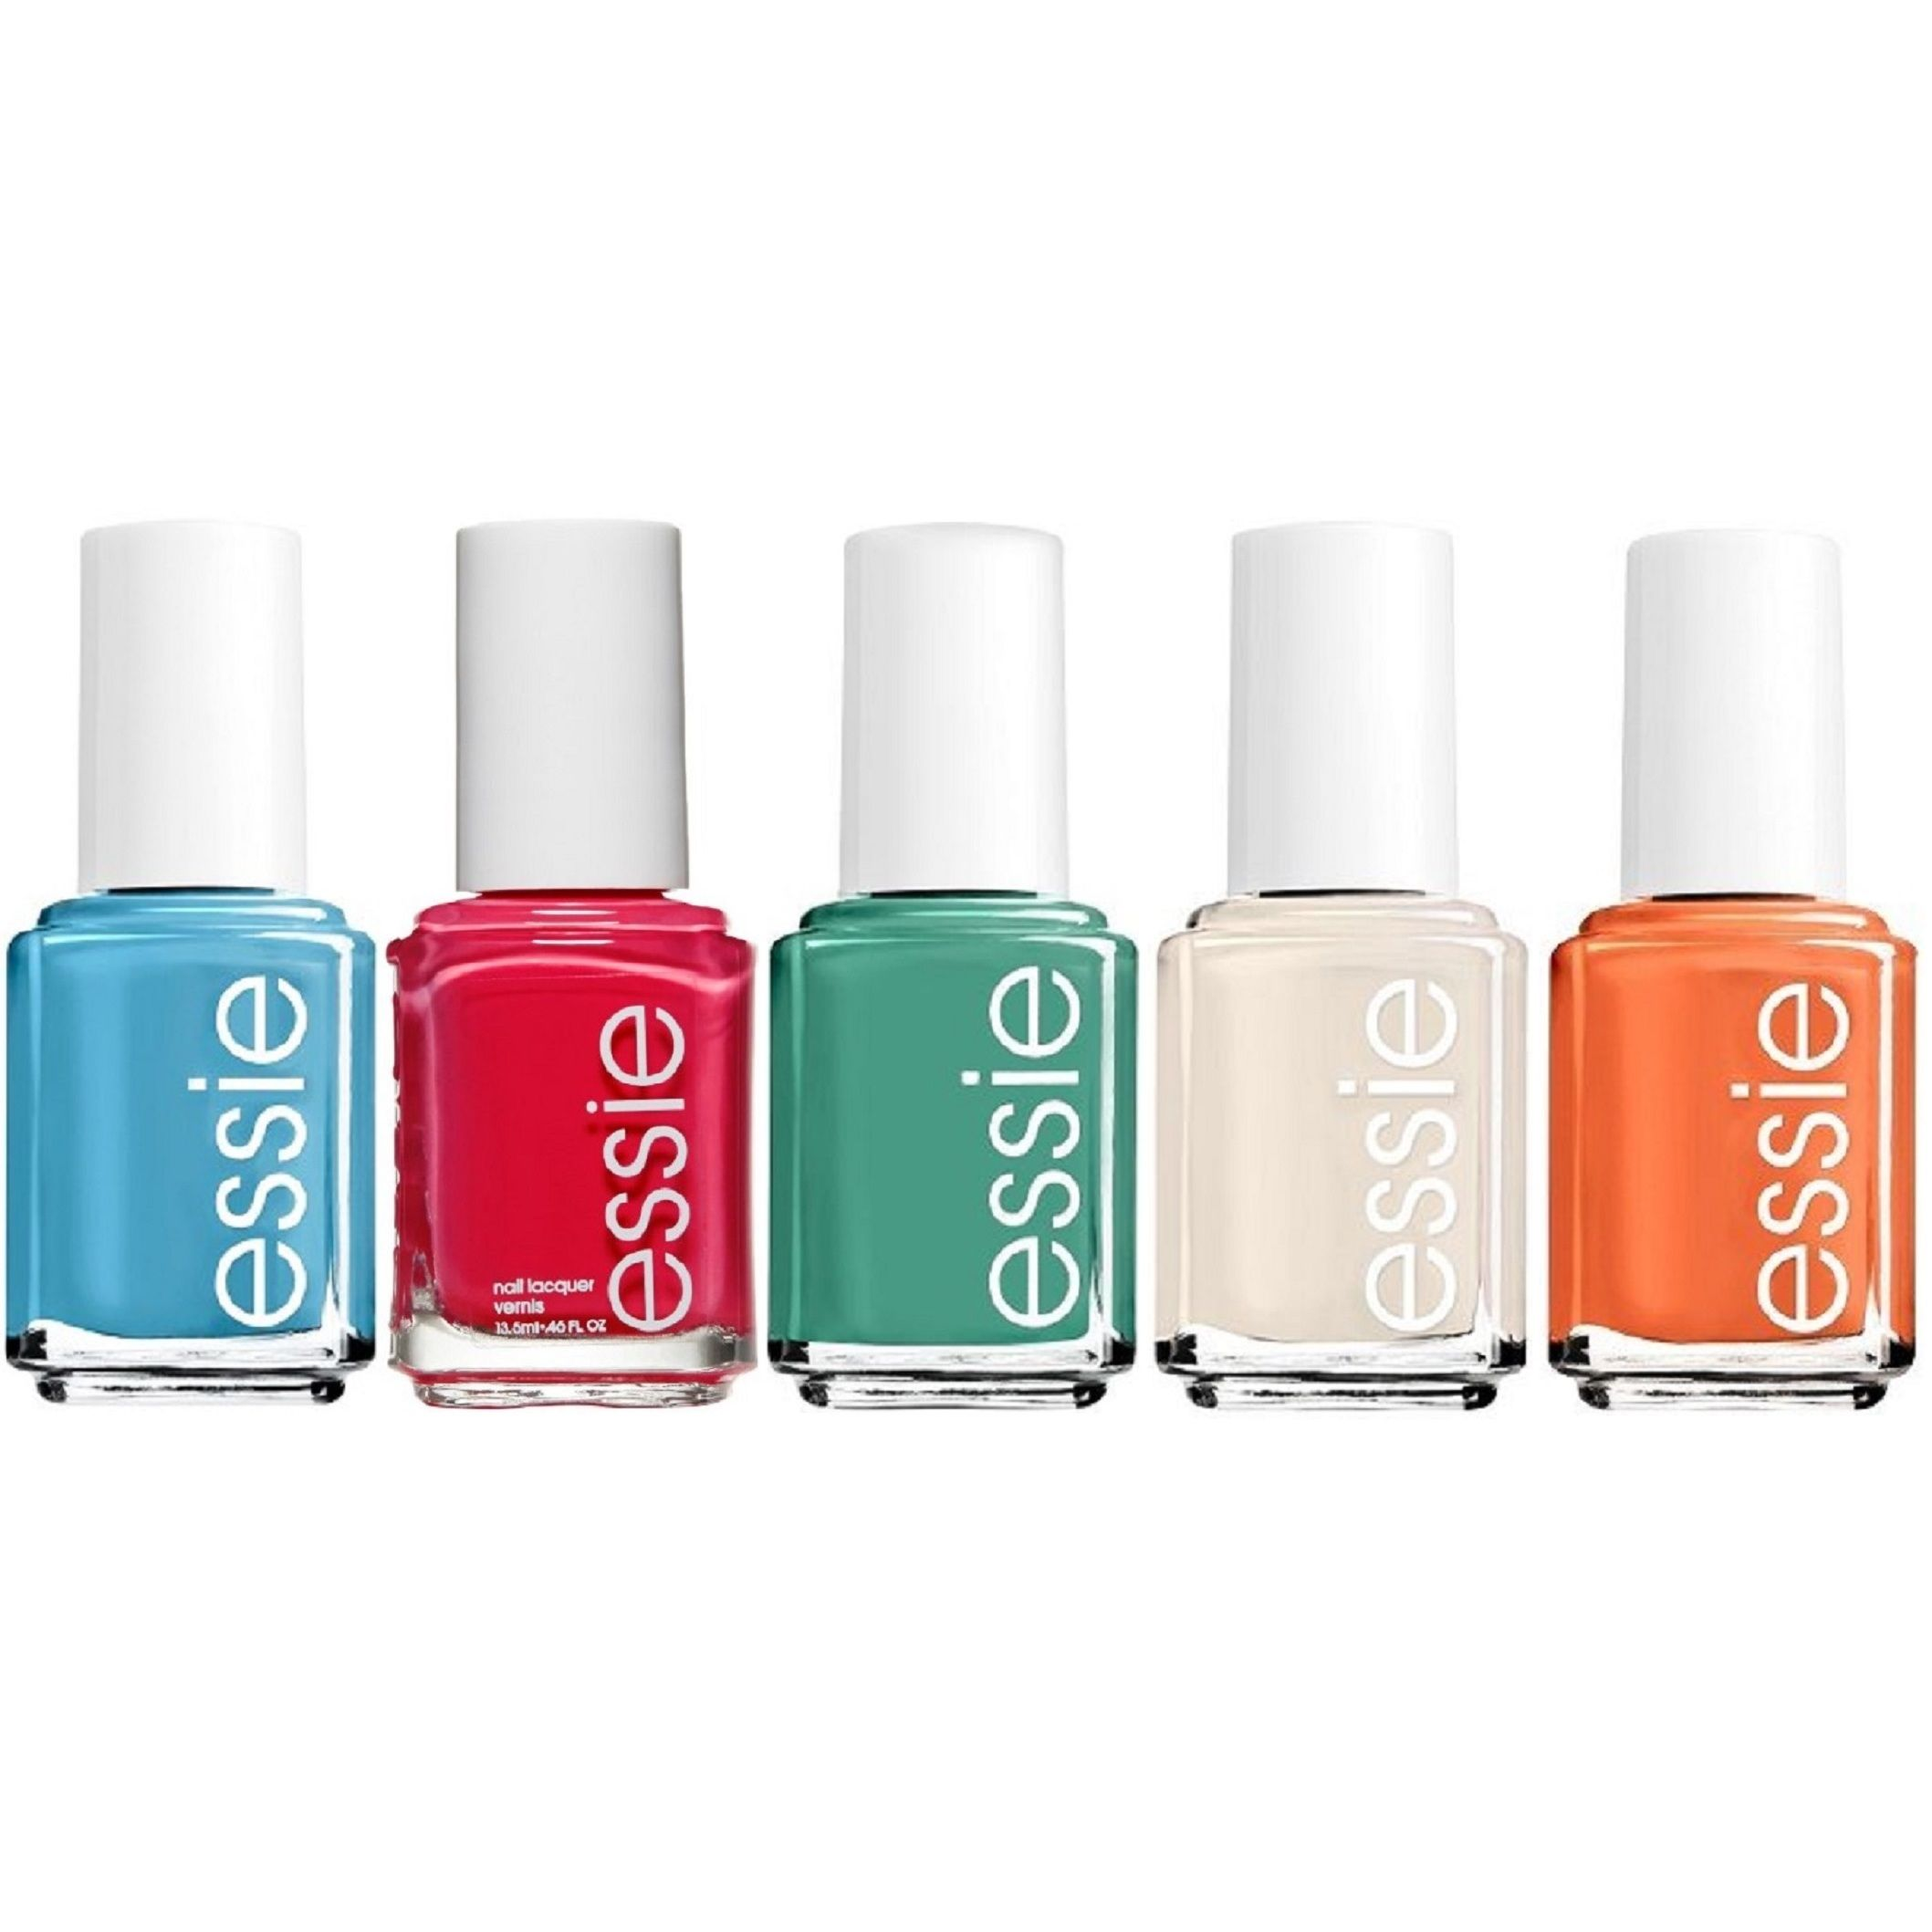 Essie Jungle 5-piece Nail Polish Set | Nail polish sets, Essie nail ...